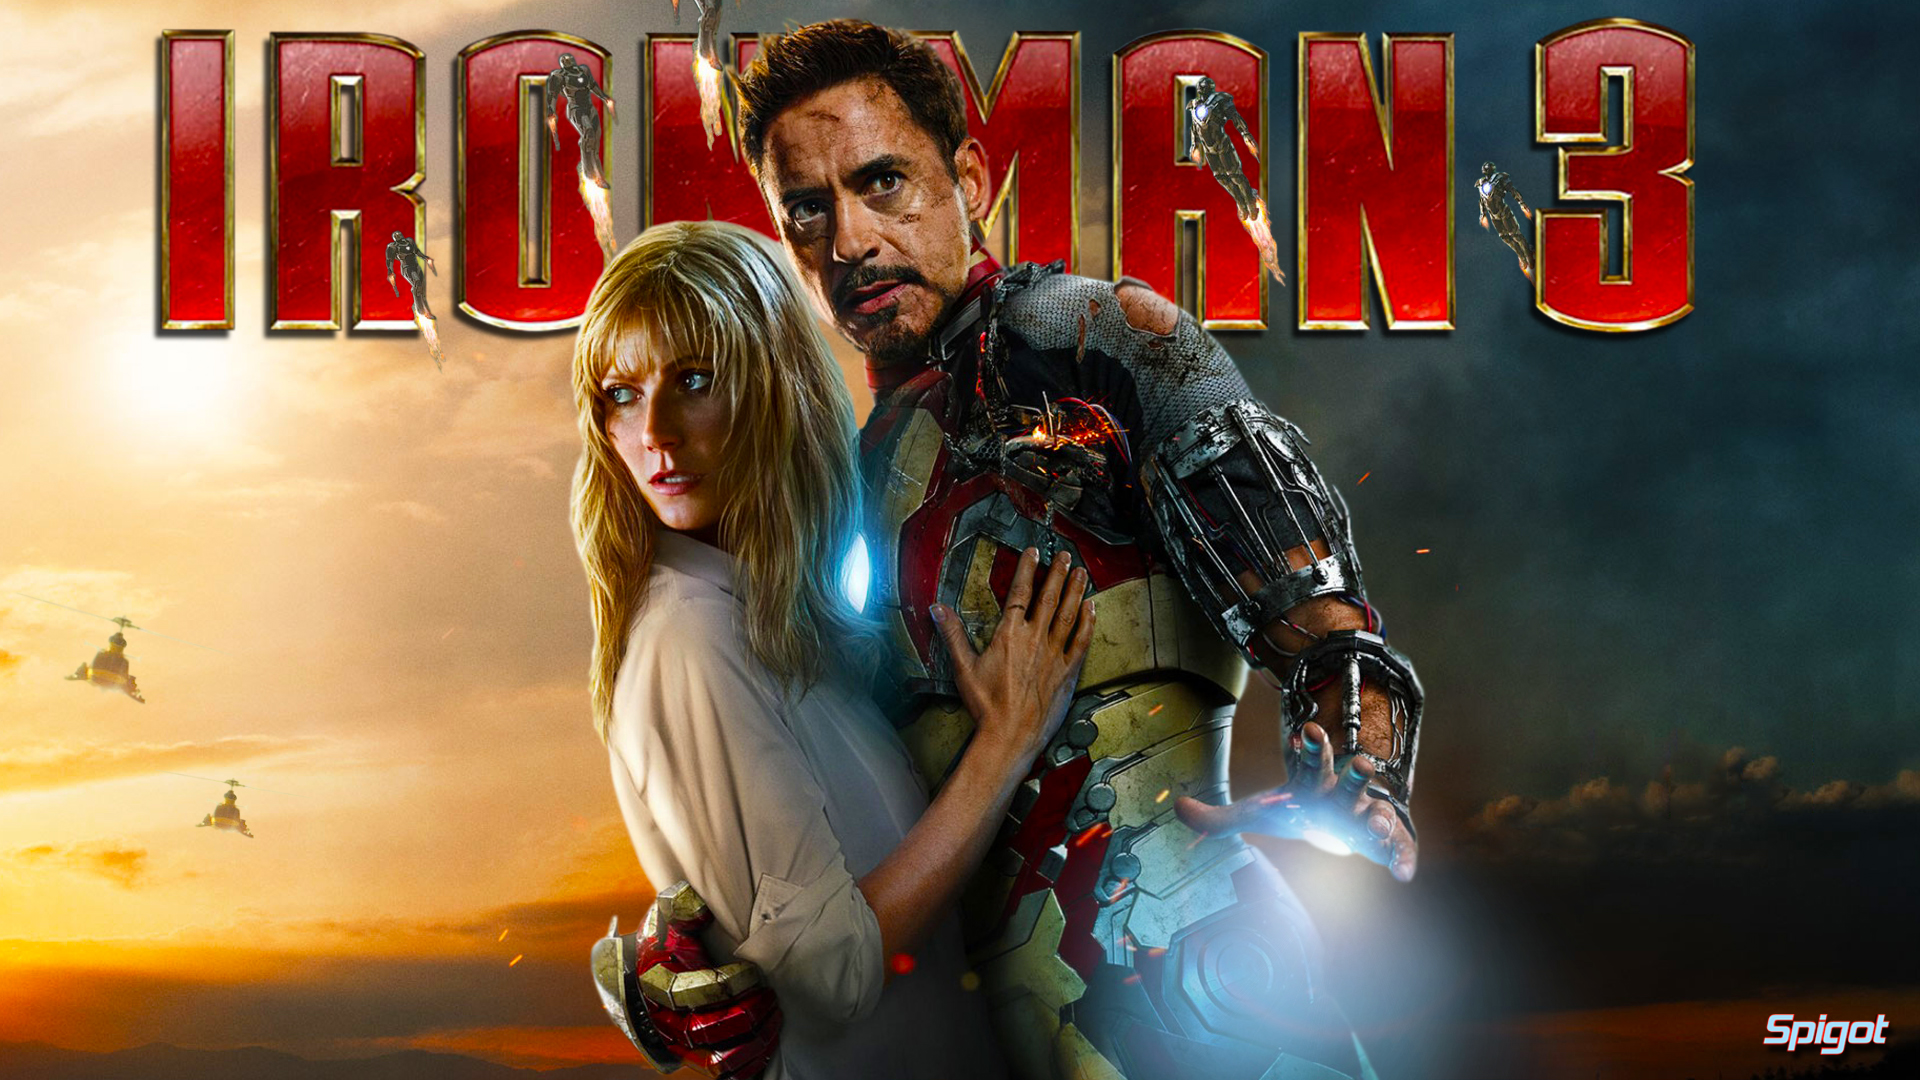 Two More Iron Man 3 Wallpapers